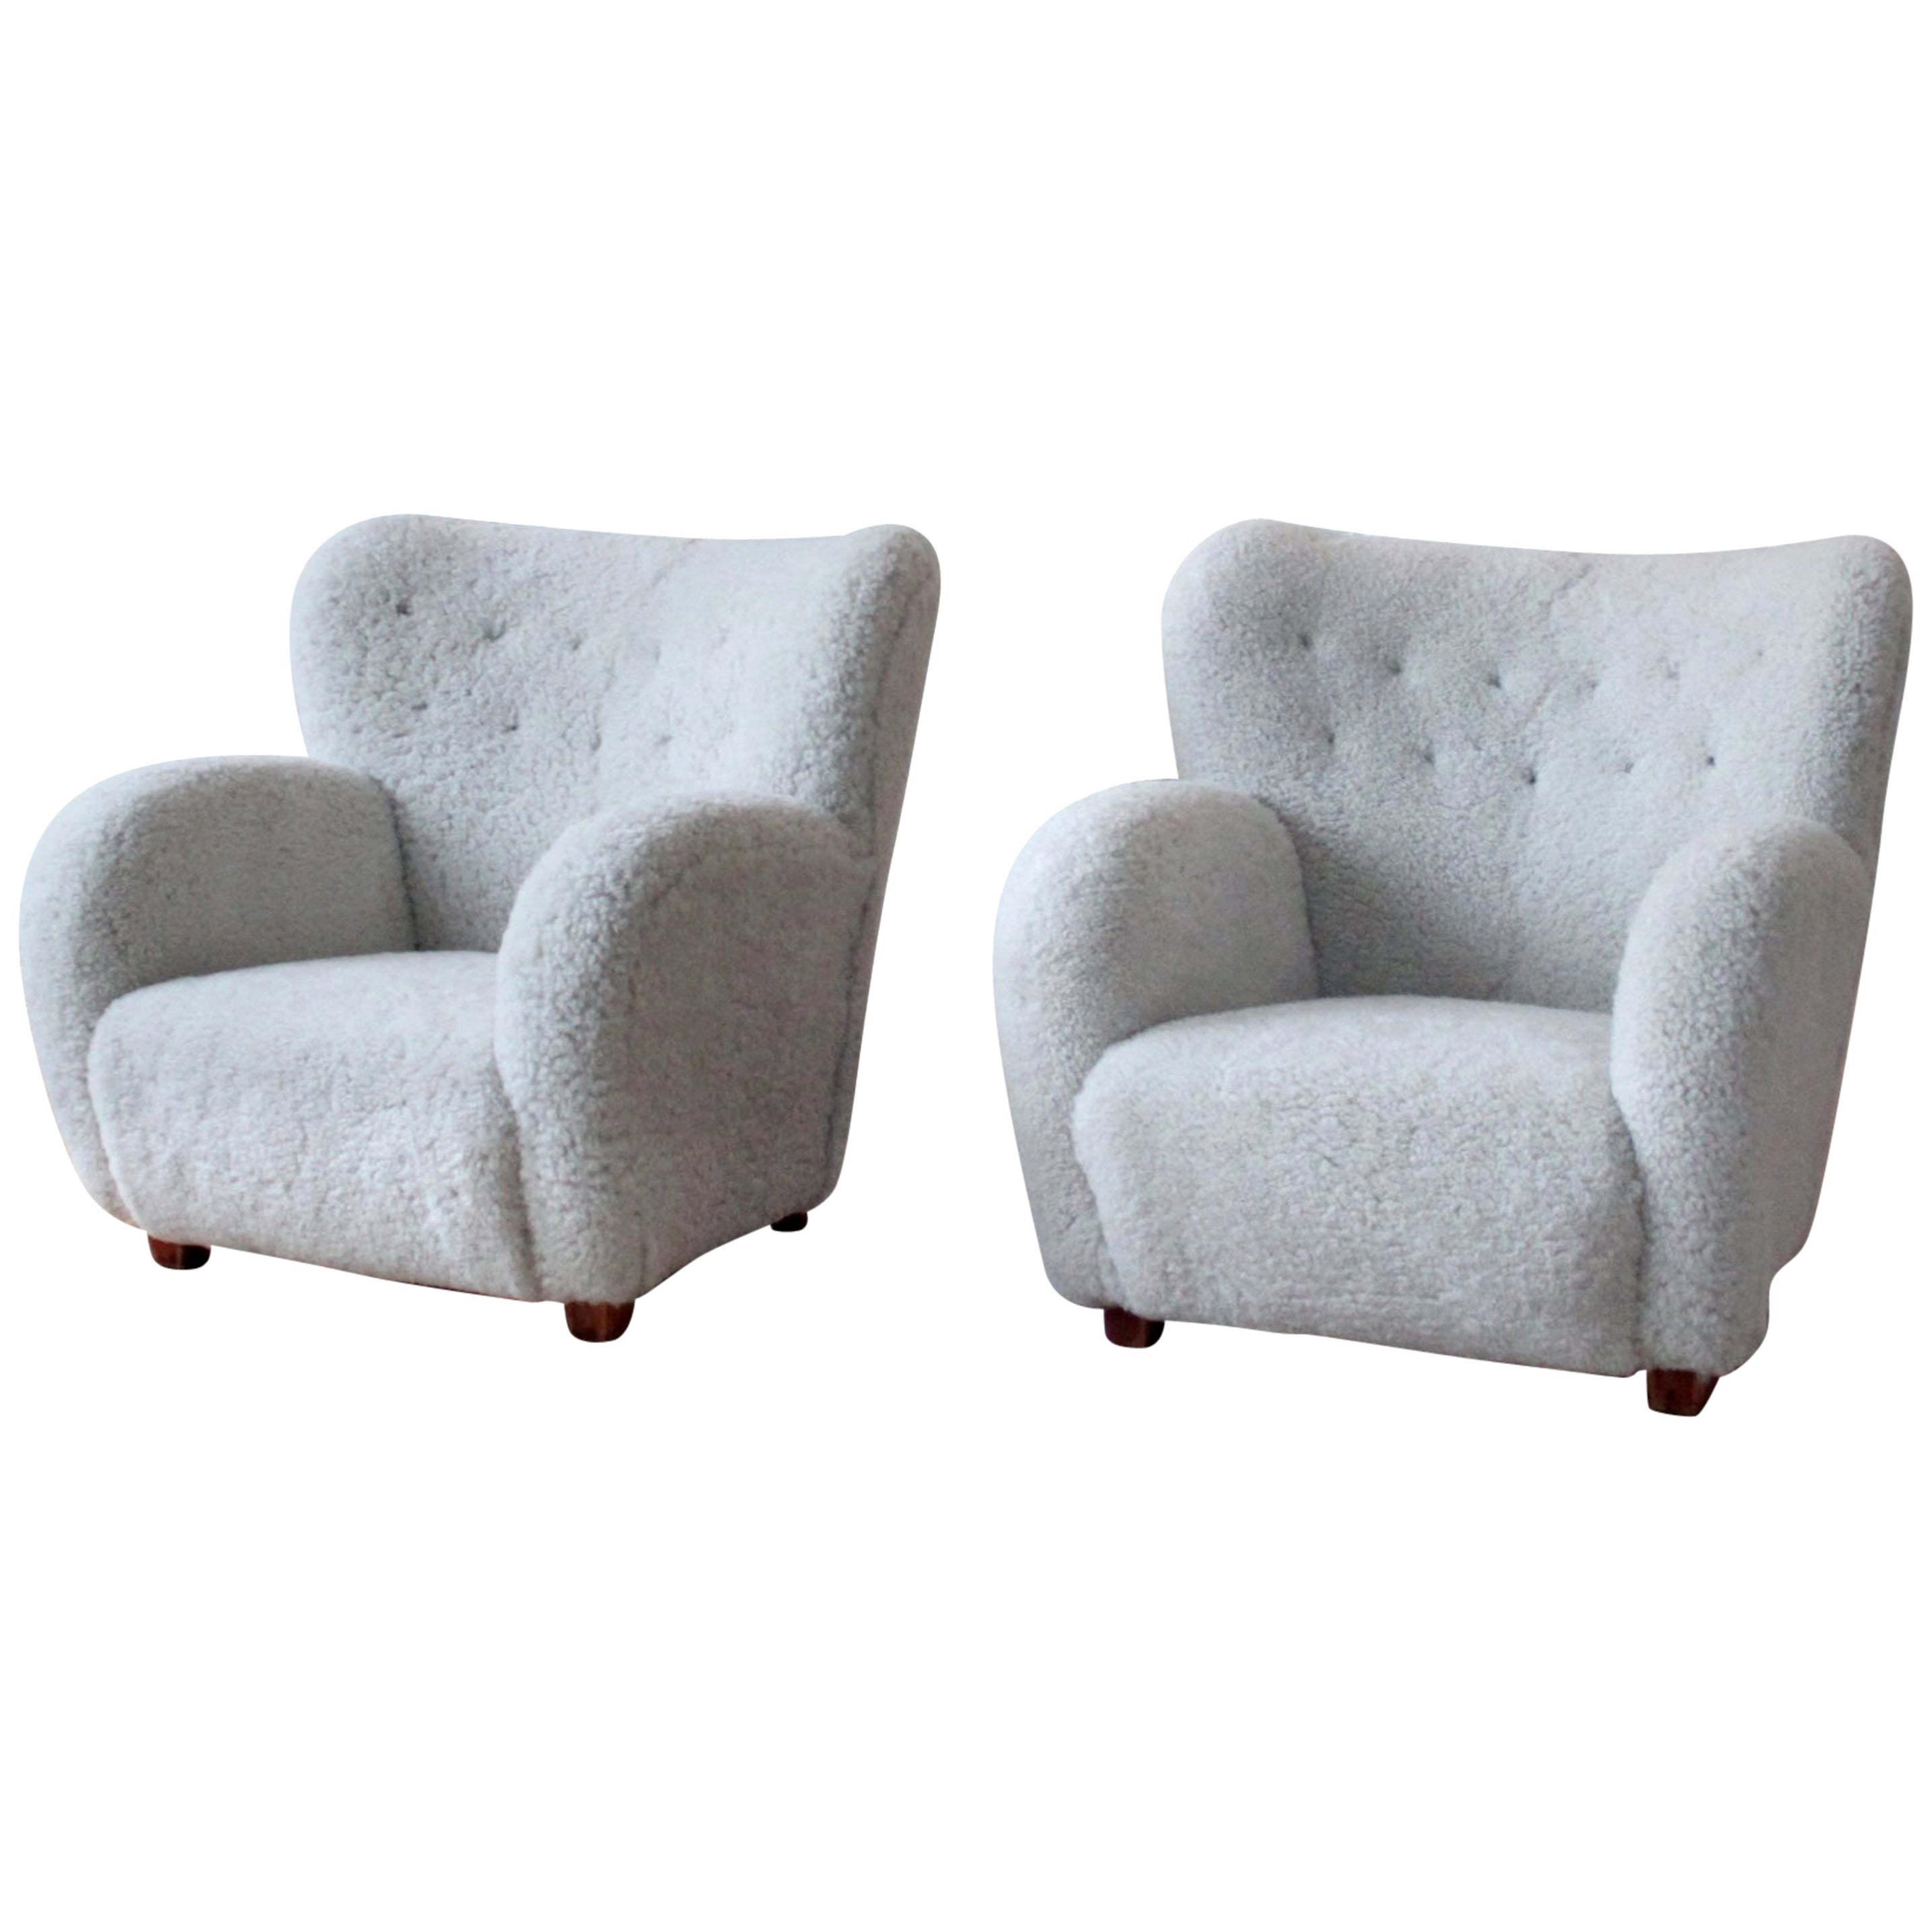 Pair of Scandinavian Modern Sheepskin Armchairs, Finland, 1950s